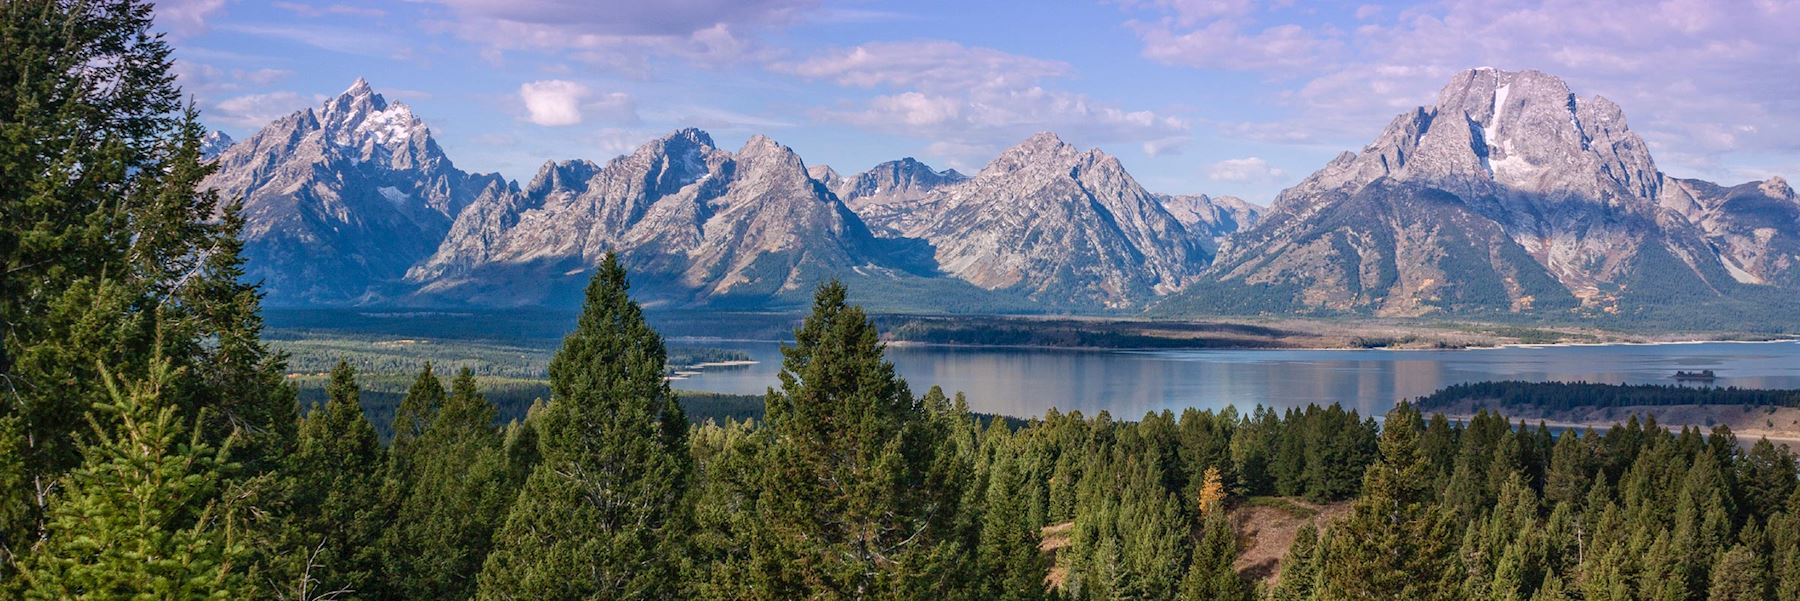 Best Places To Travel In May In Usa